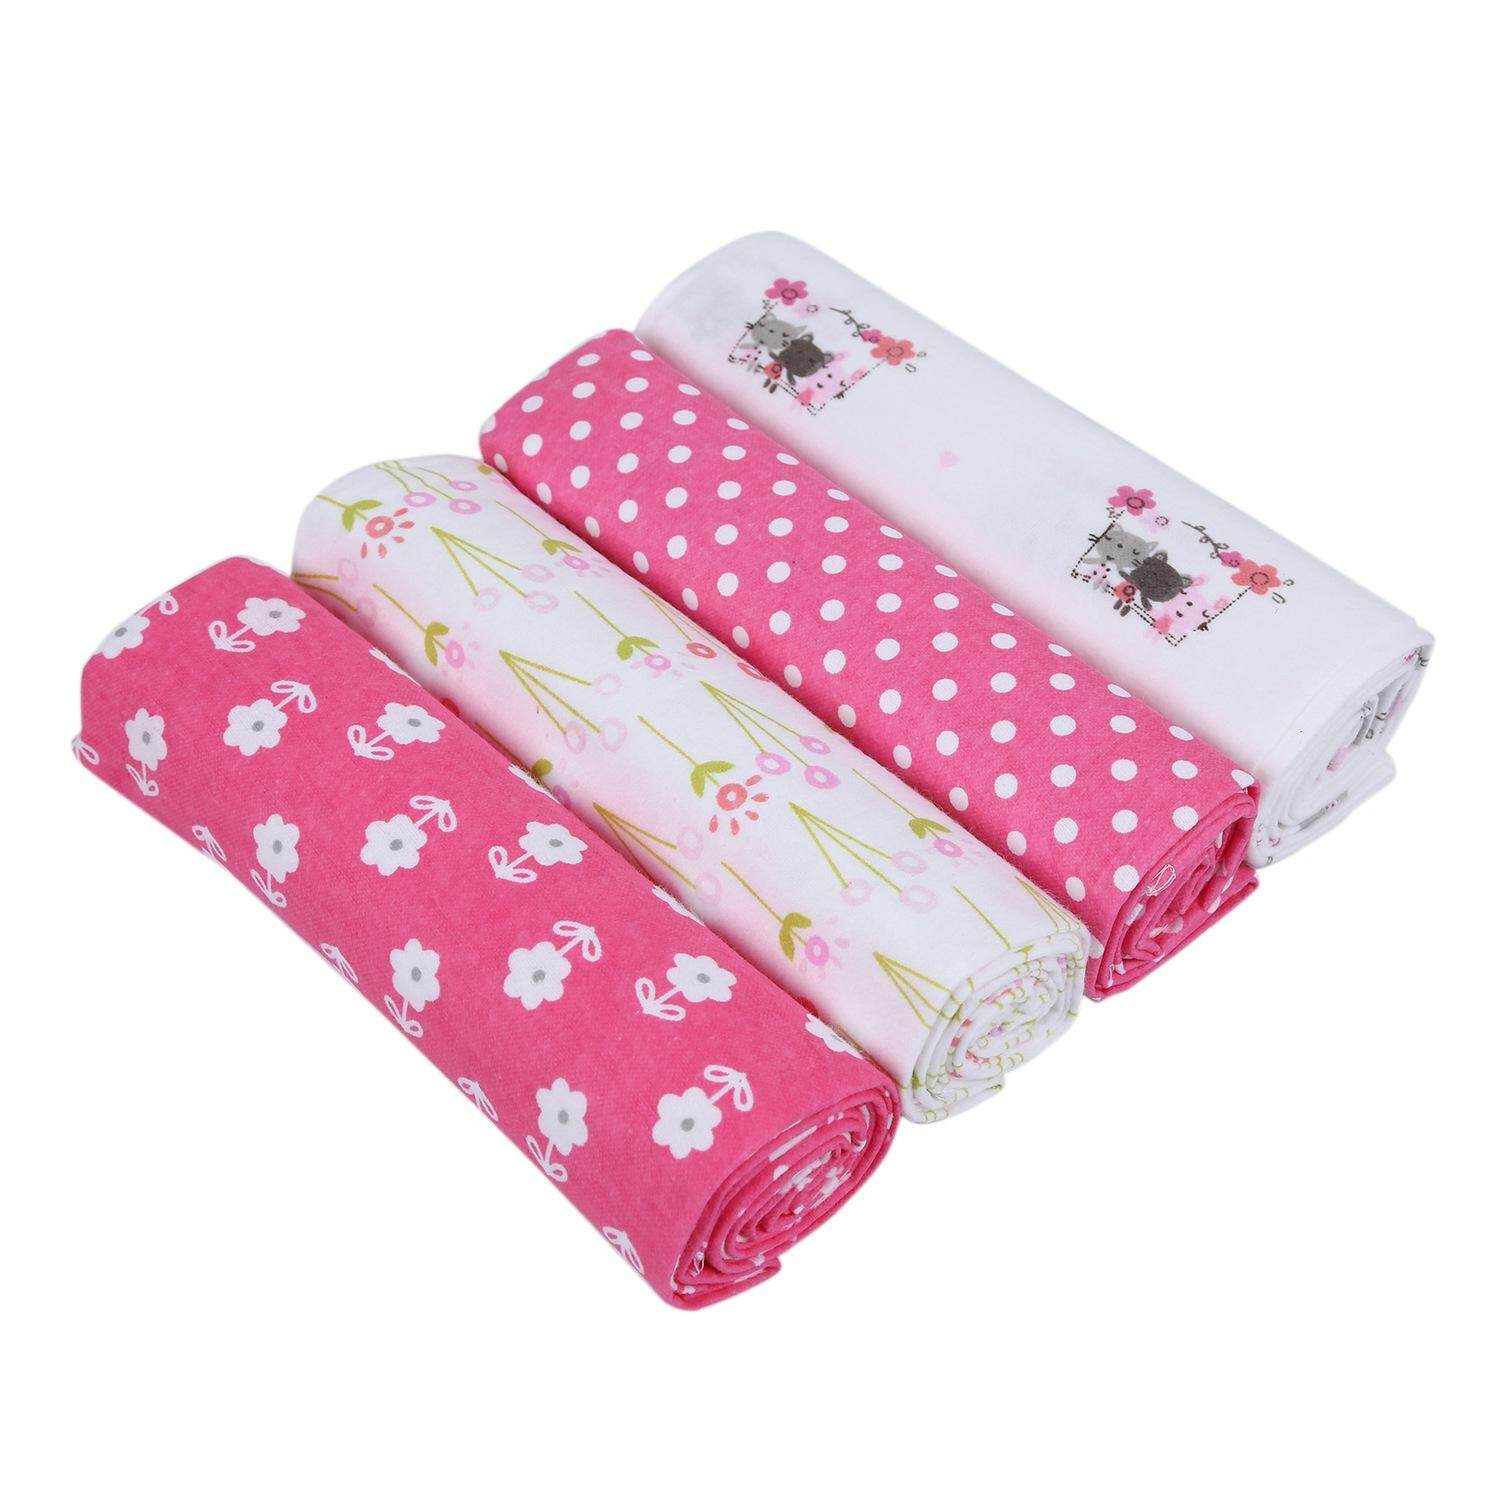 4 Pieces/Batch Cotton Baby Soft Newborn Baby Baby Blanket Baby Blanket Newborn Baby Wrap Baby Girl